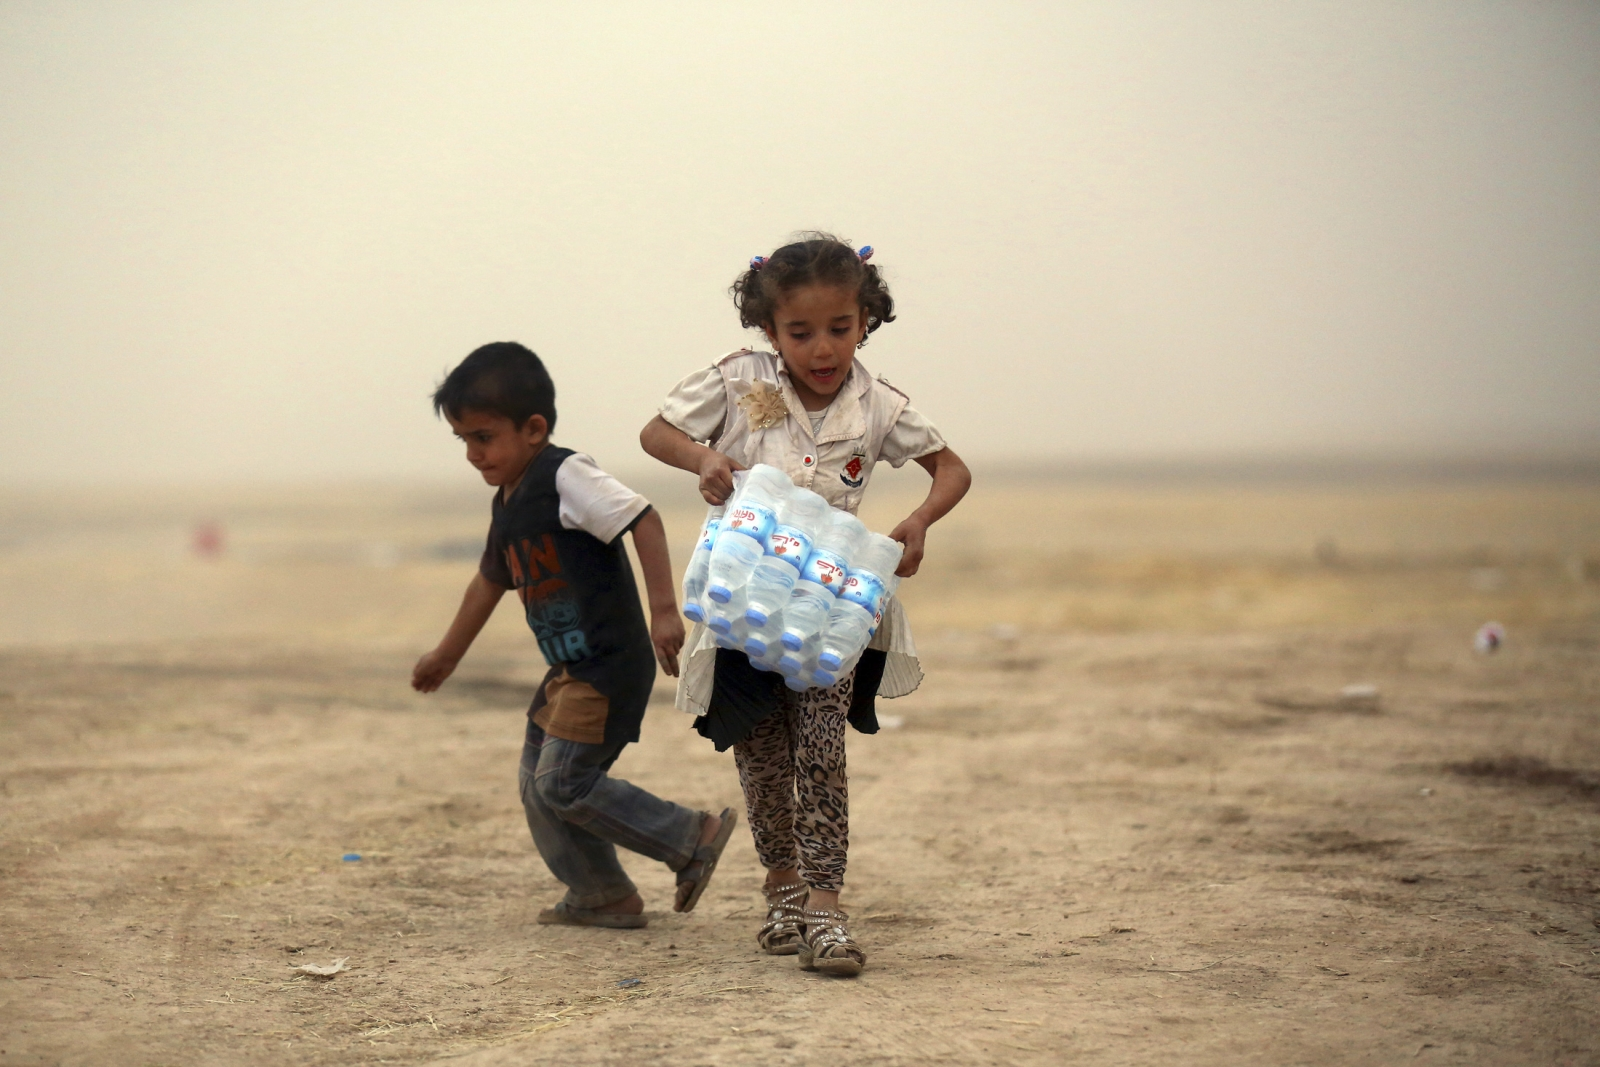 Iraq crisis: Isis kidnaps children